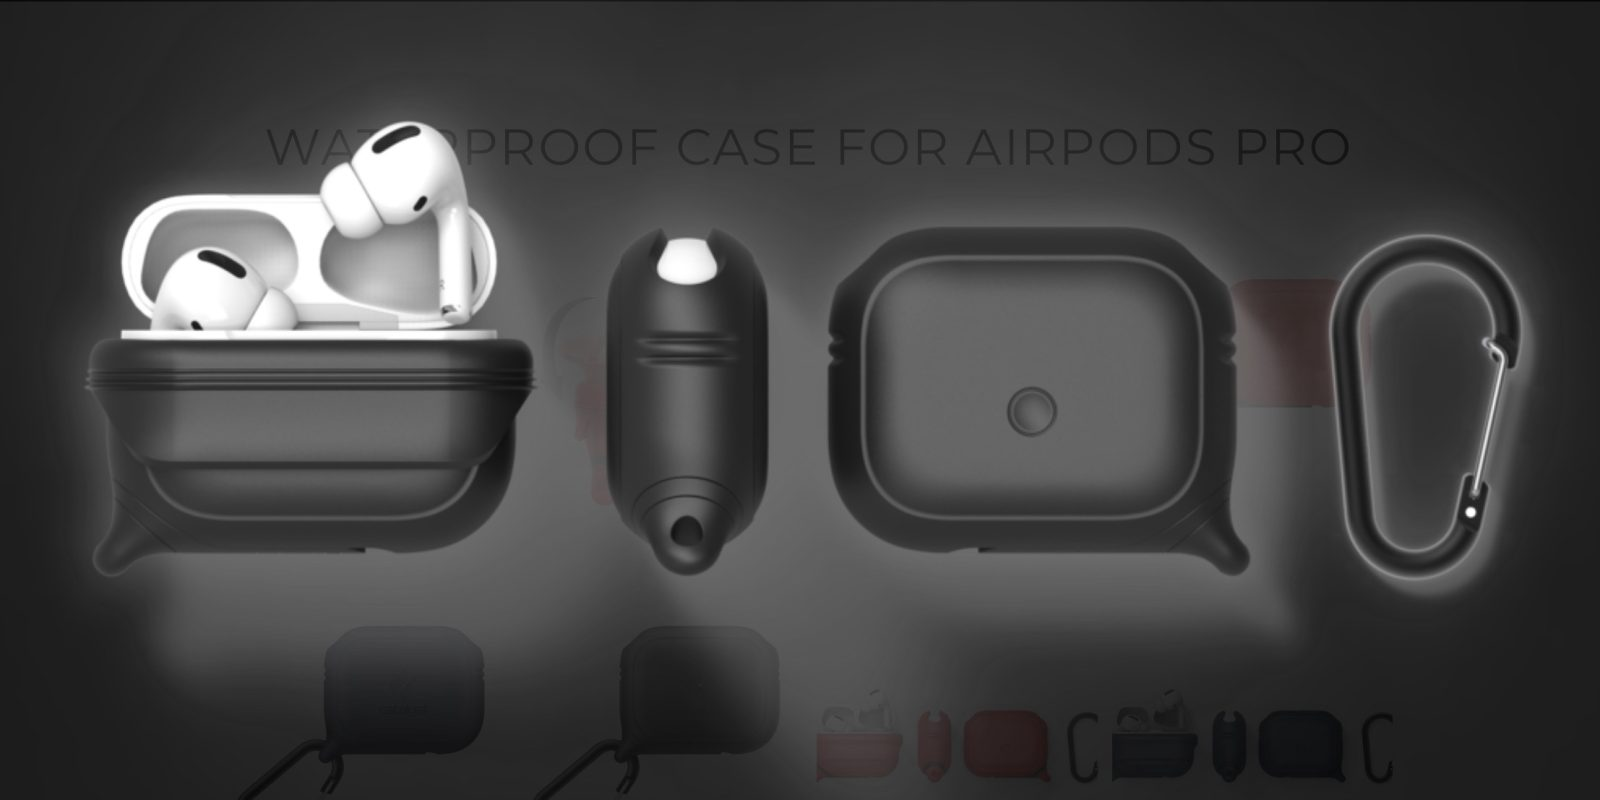 Catalyst Launches Its Waterproof Airpods Pro Case With Military